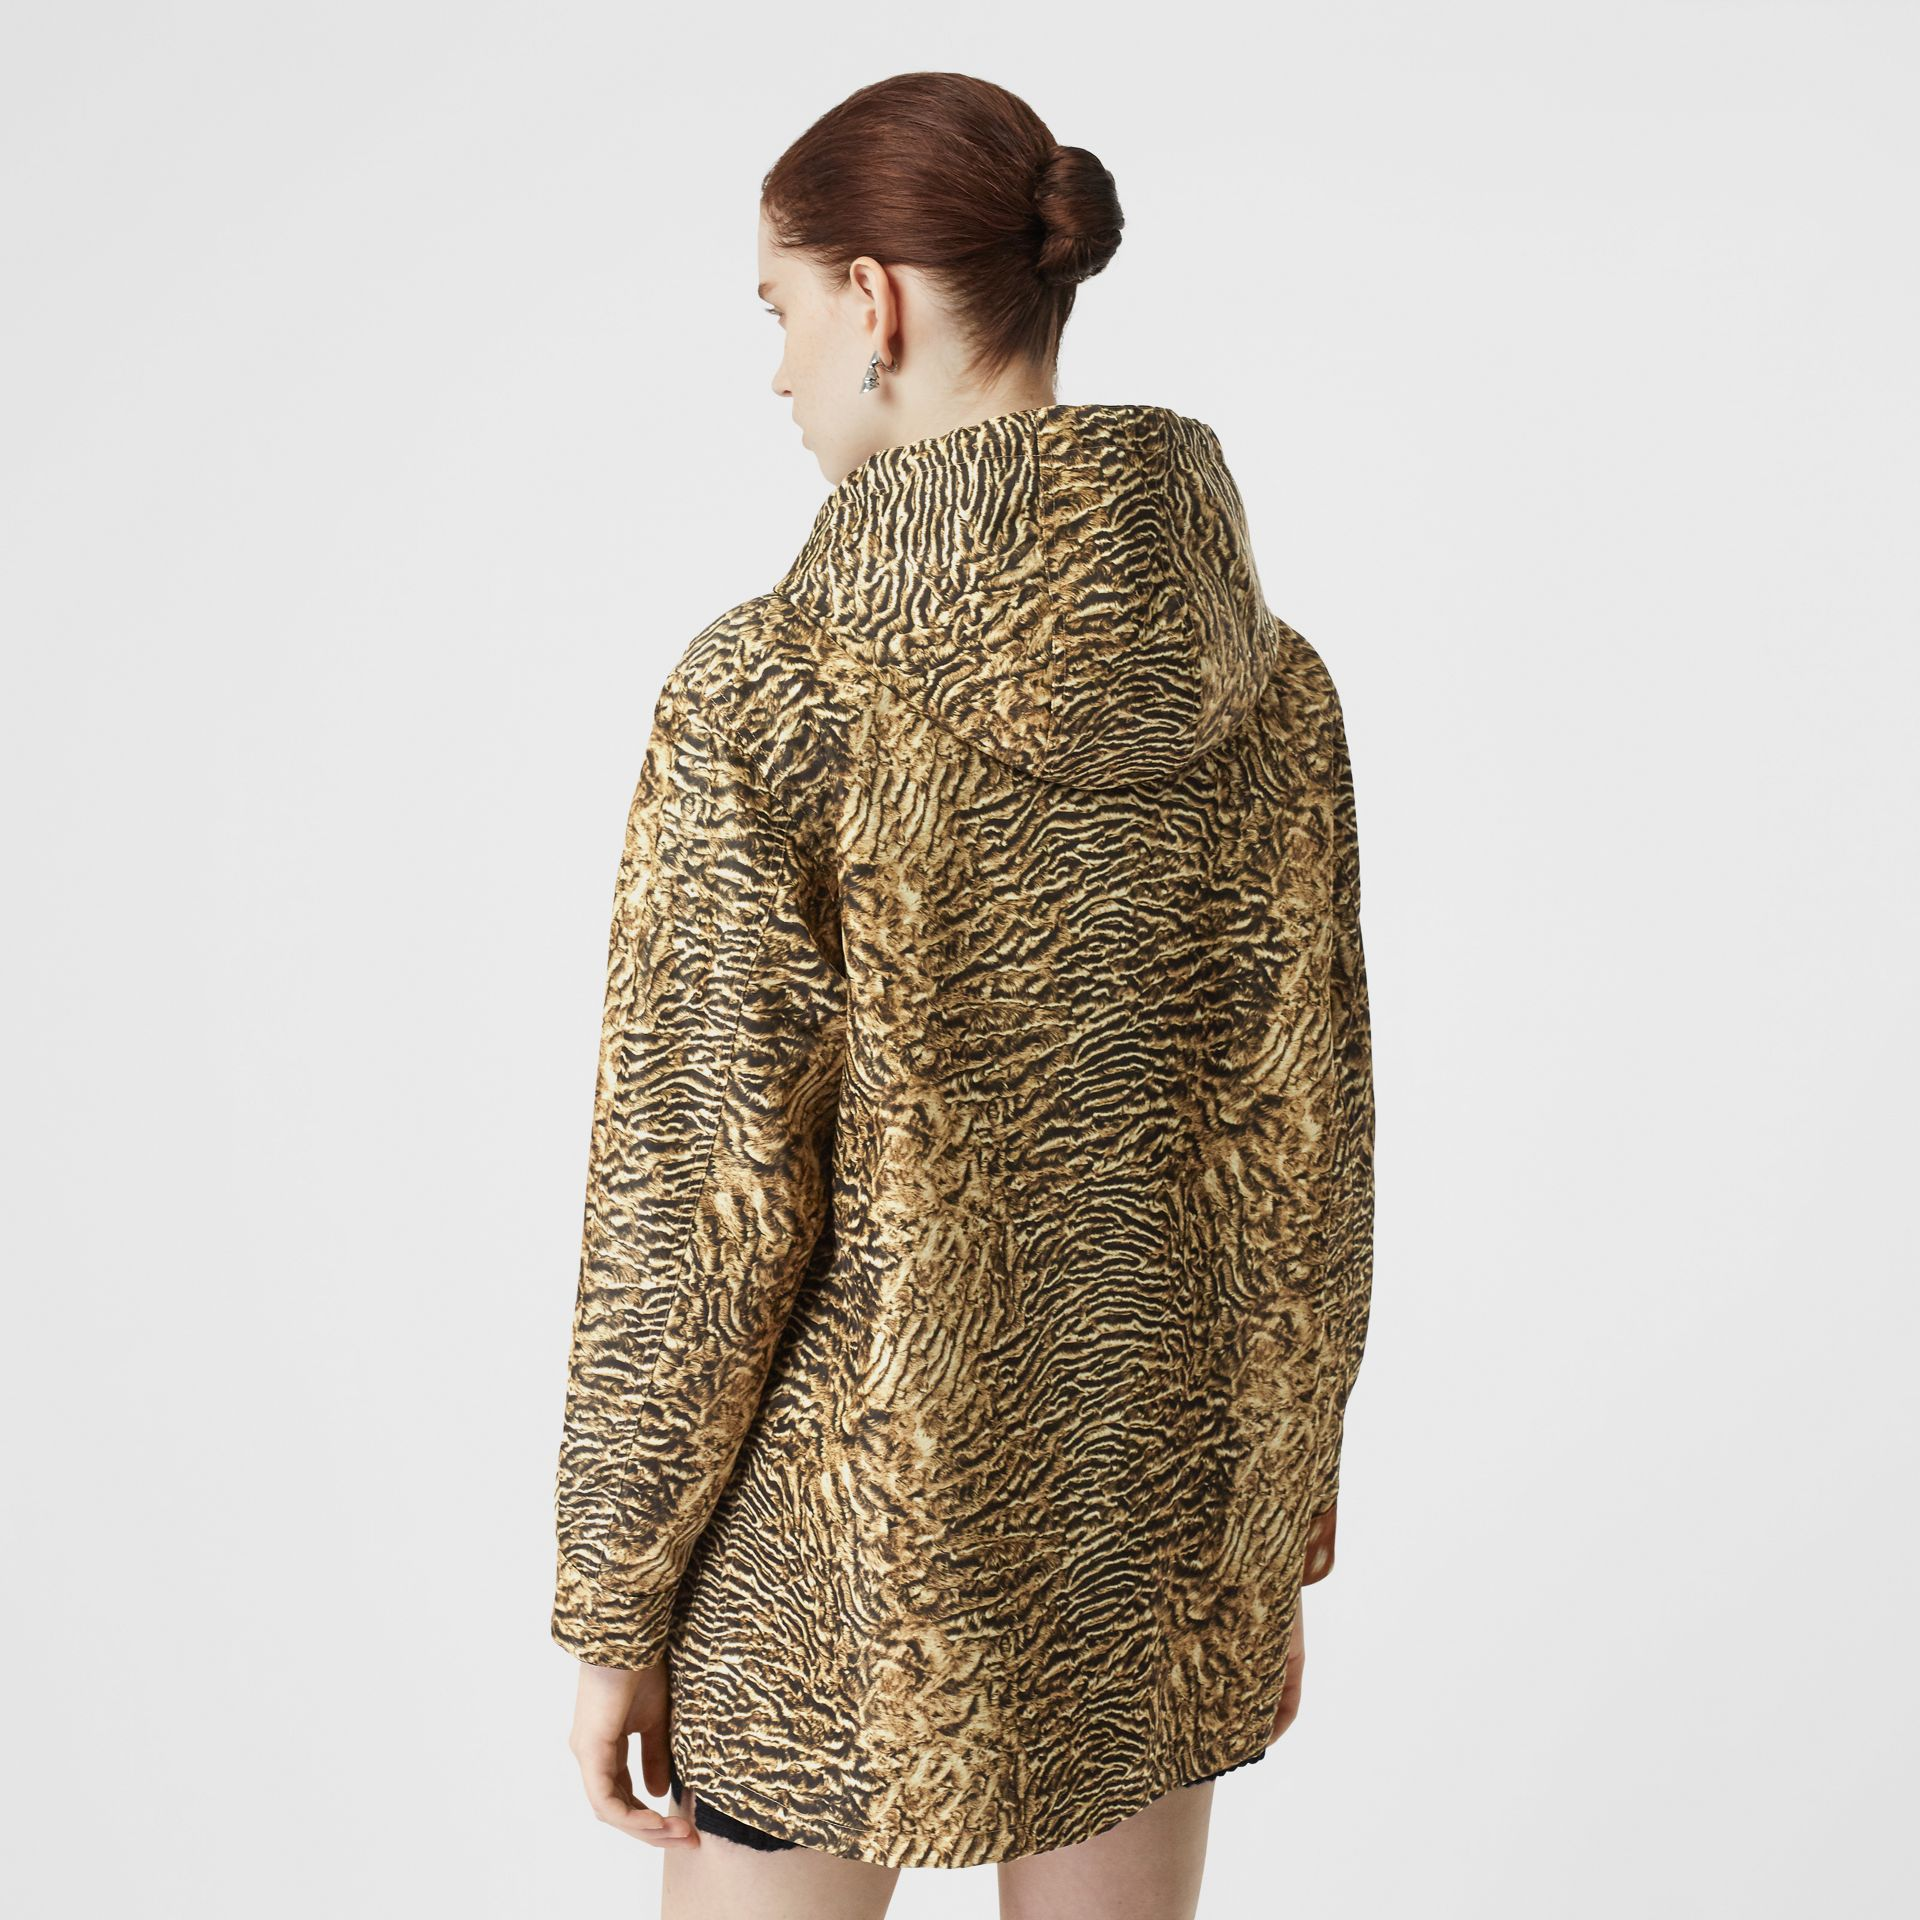 Tiger Print Lightweight Hooded Jacket in Beige - Women | Burberry United Kingdom - gallery image 2